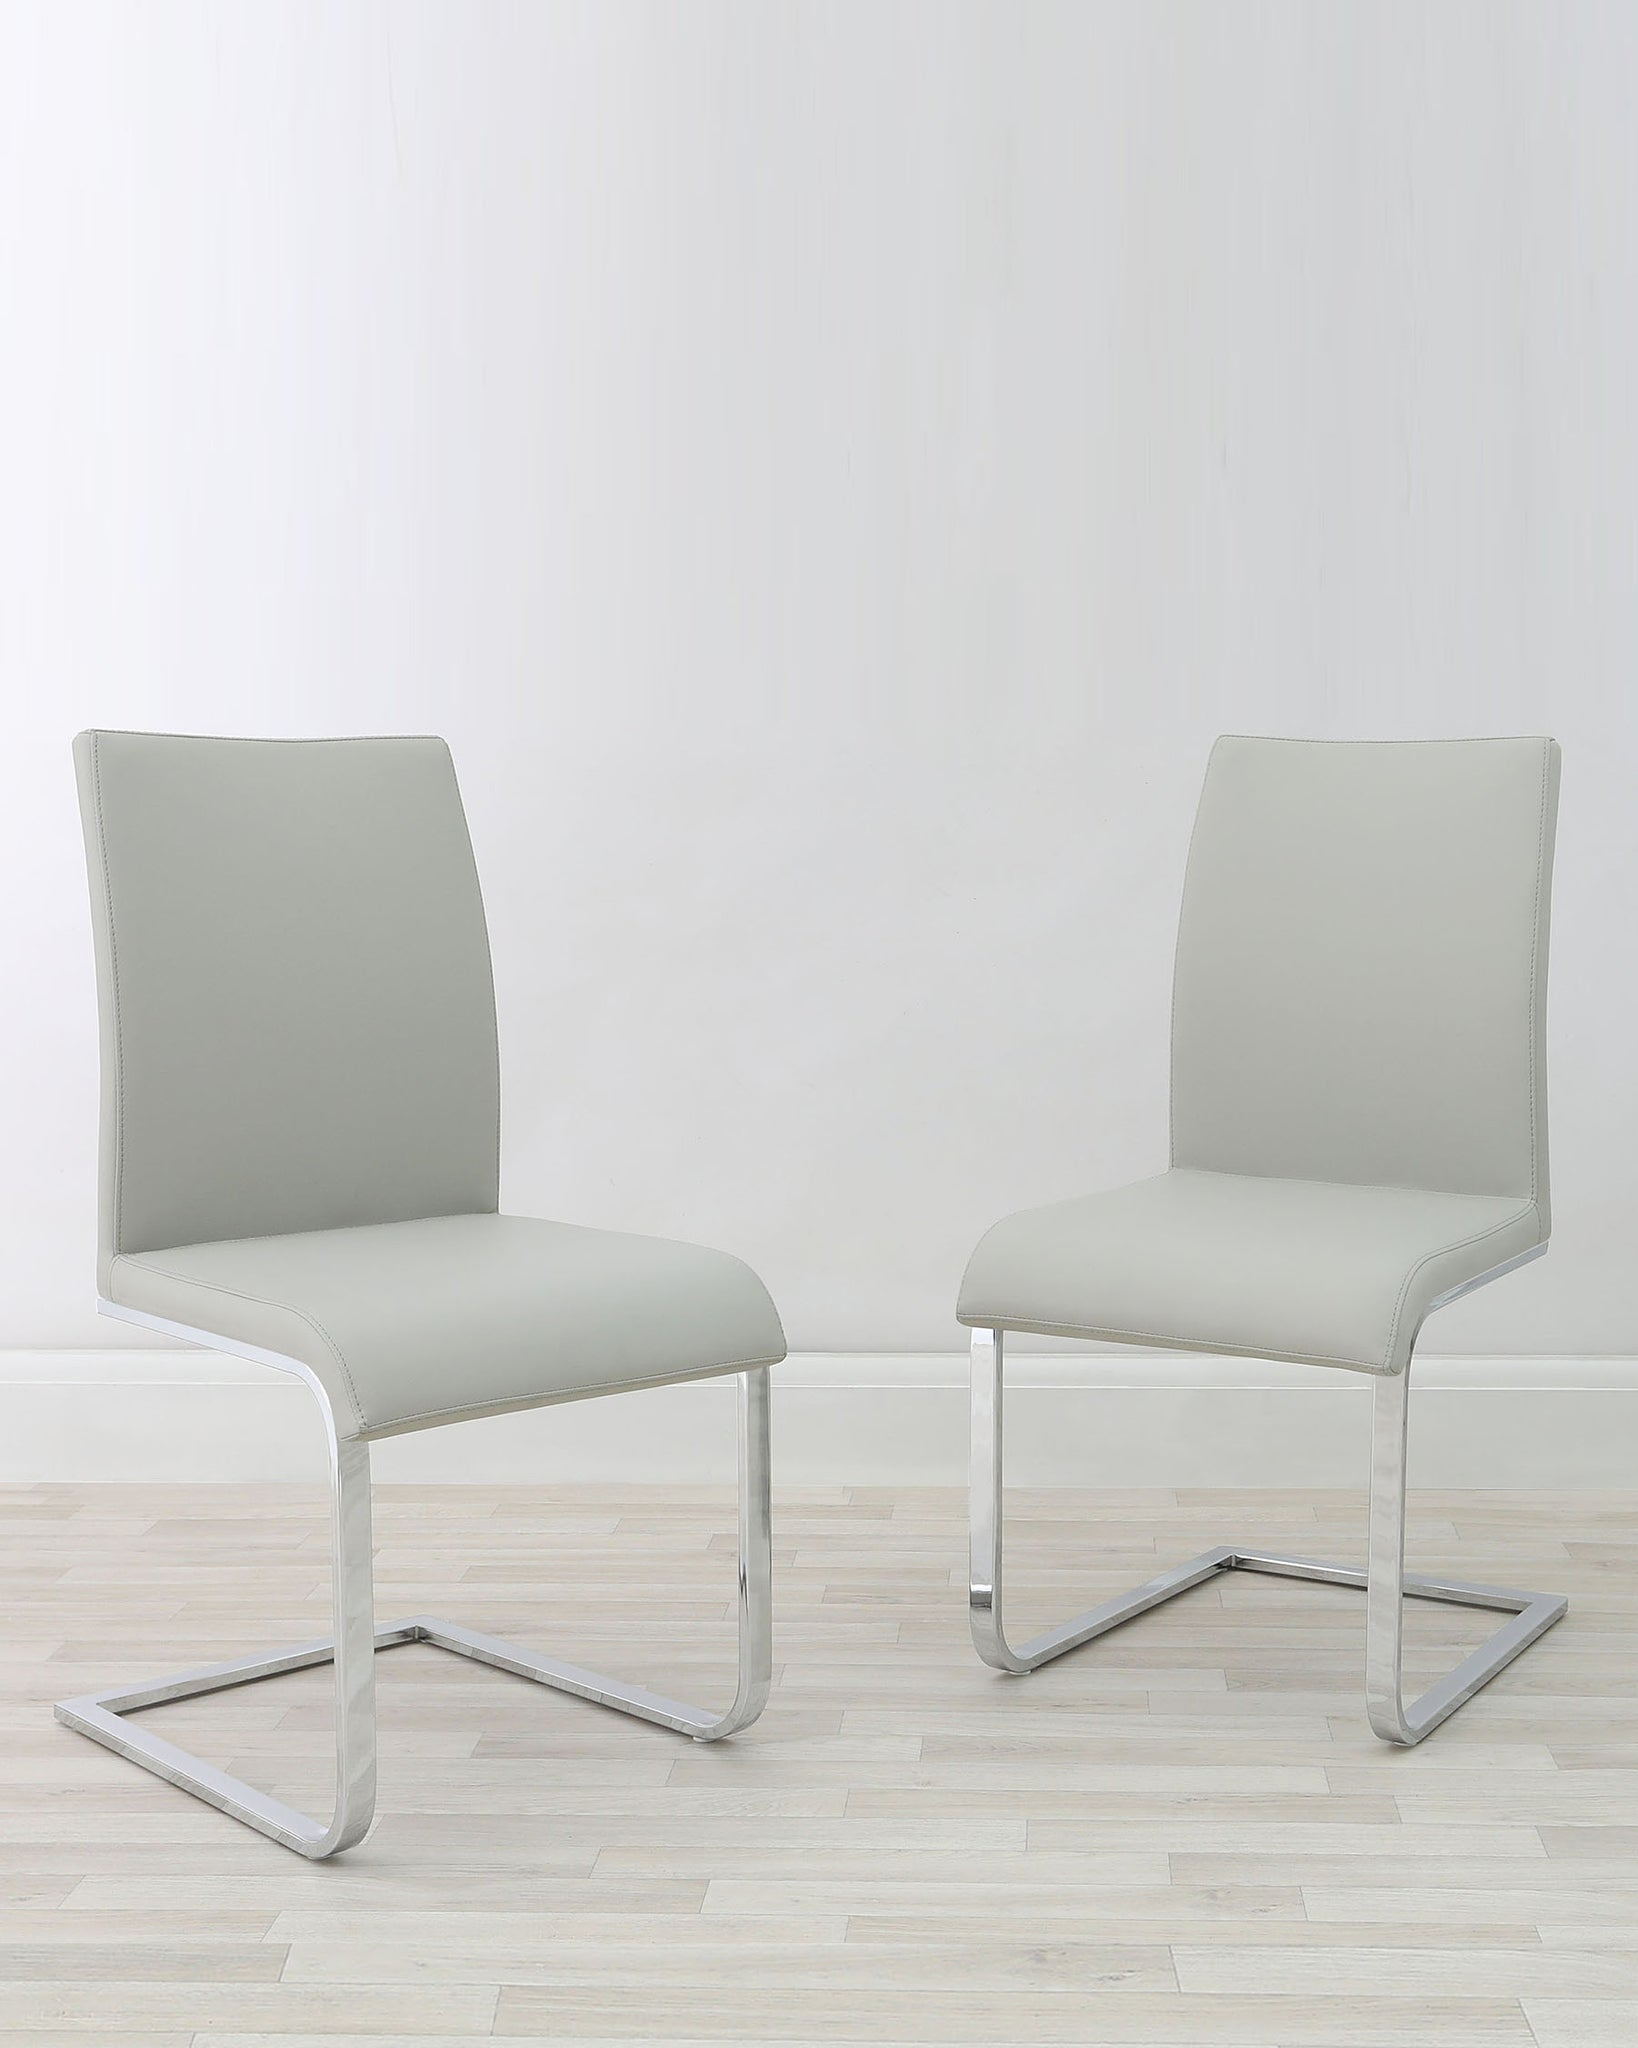 Verona Cantilever Light Grey Faux Leather Chair - Set Of 2